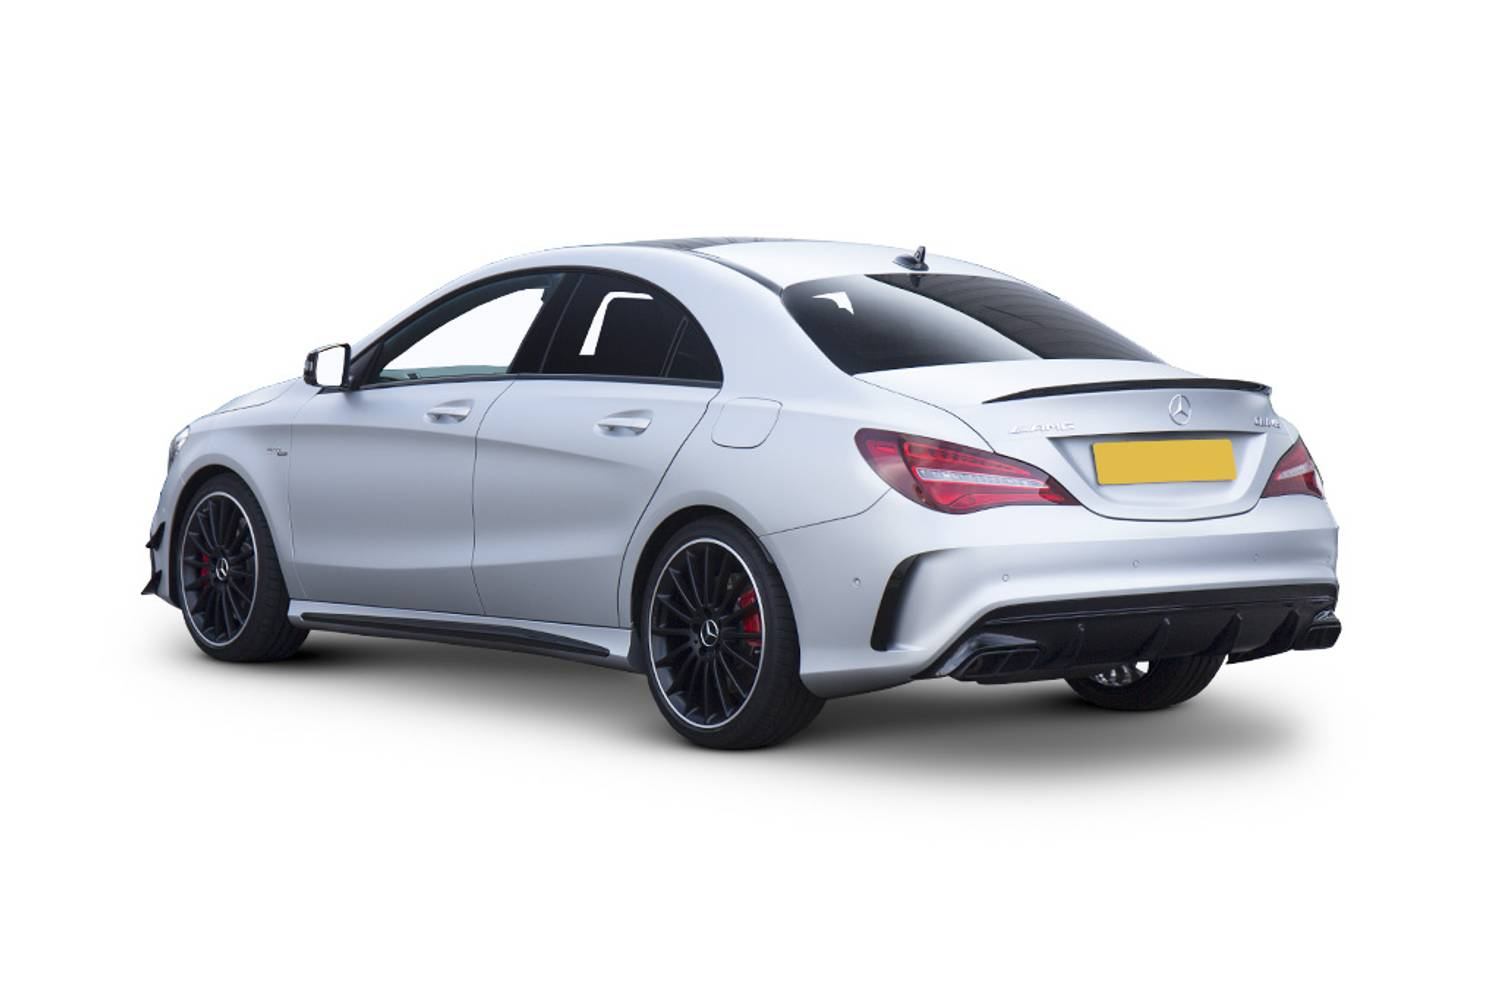 new mercedes benz cla class amg coupe special edition cla 45 4matic yellow night edition 4 door. Black Bedroom Furniture Sets. Home Design Ideas